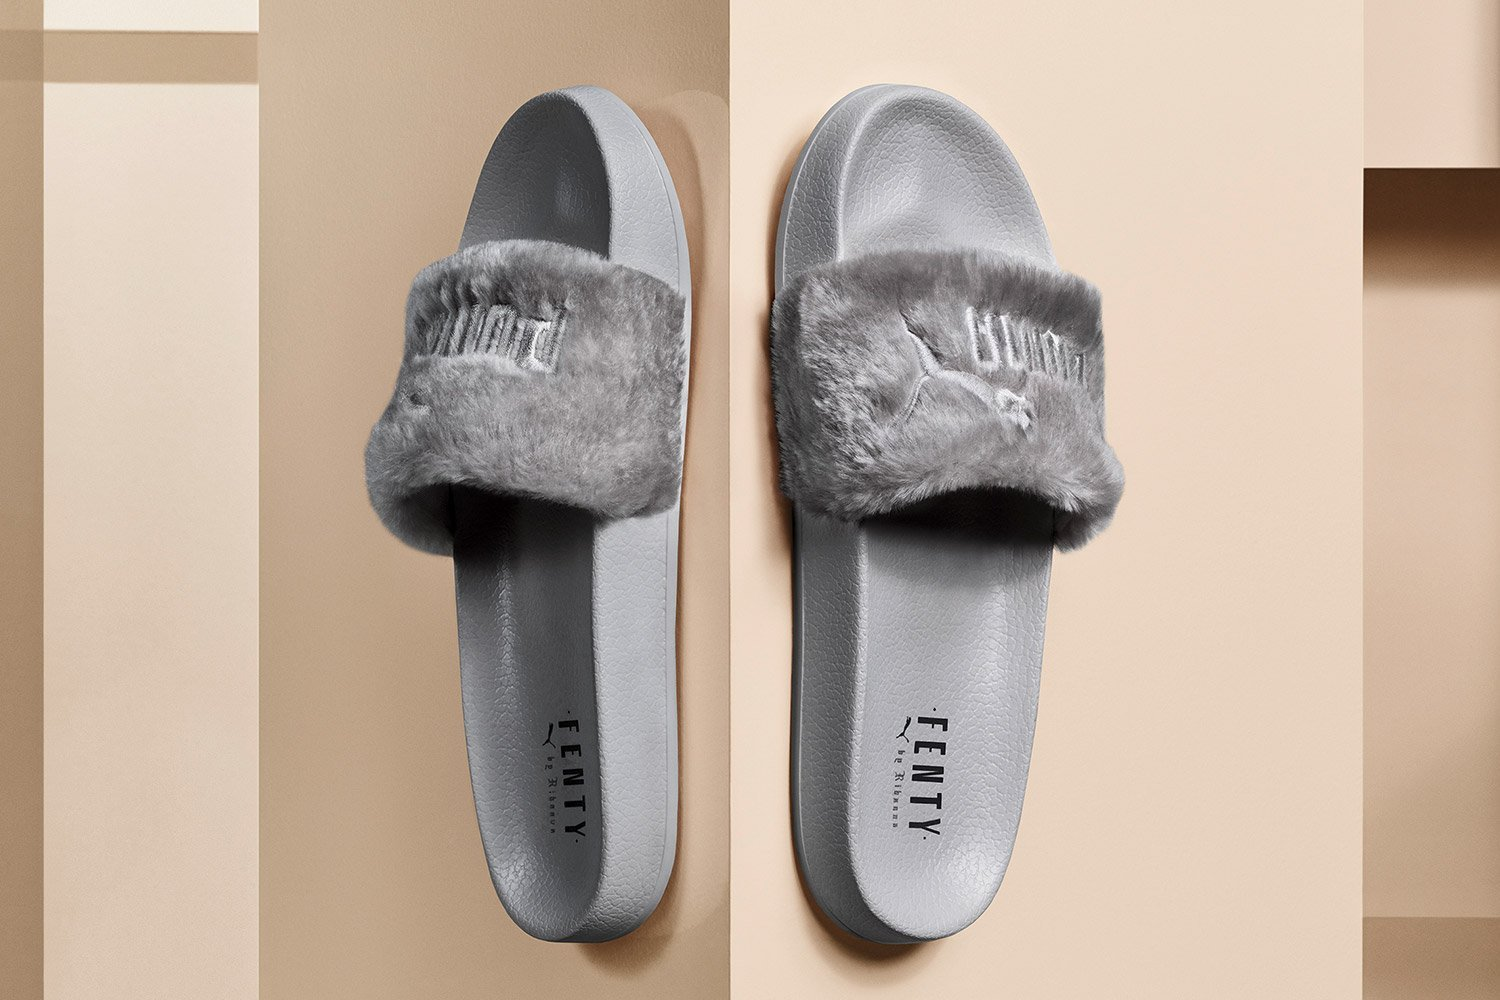 e40583a16903 Buy FENTY PUMA by Rihanna Collection - Fur Slide in Cheap Price on ...